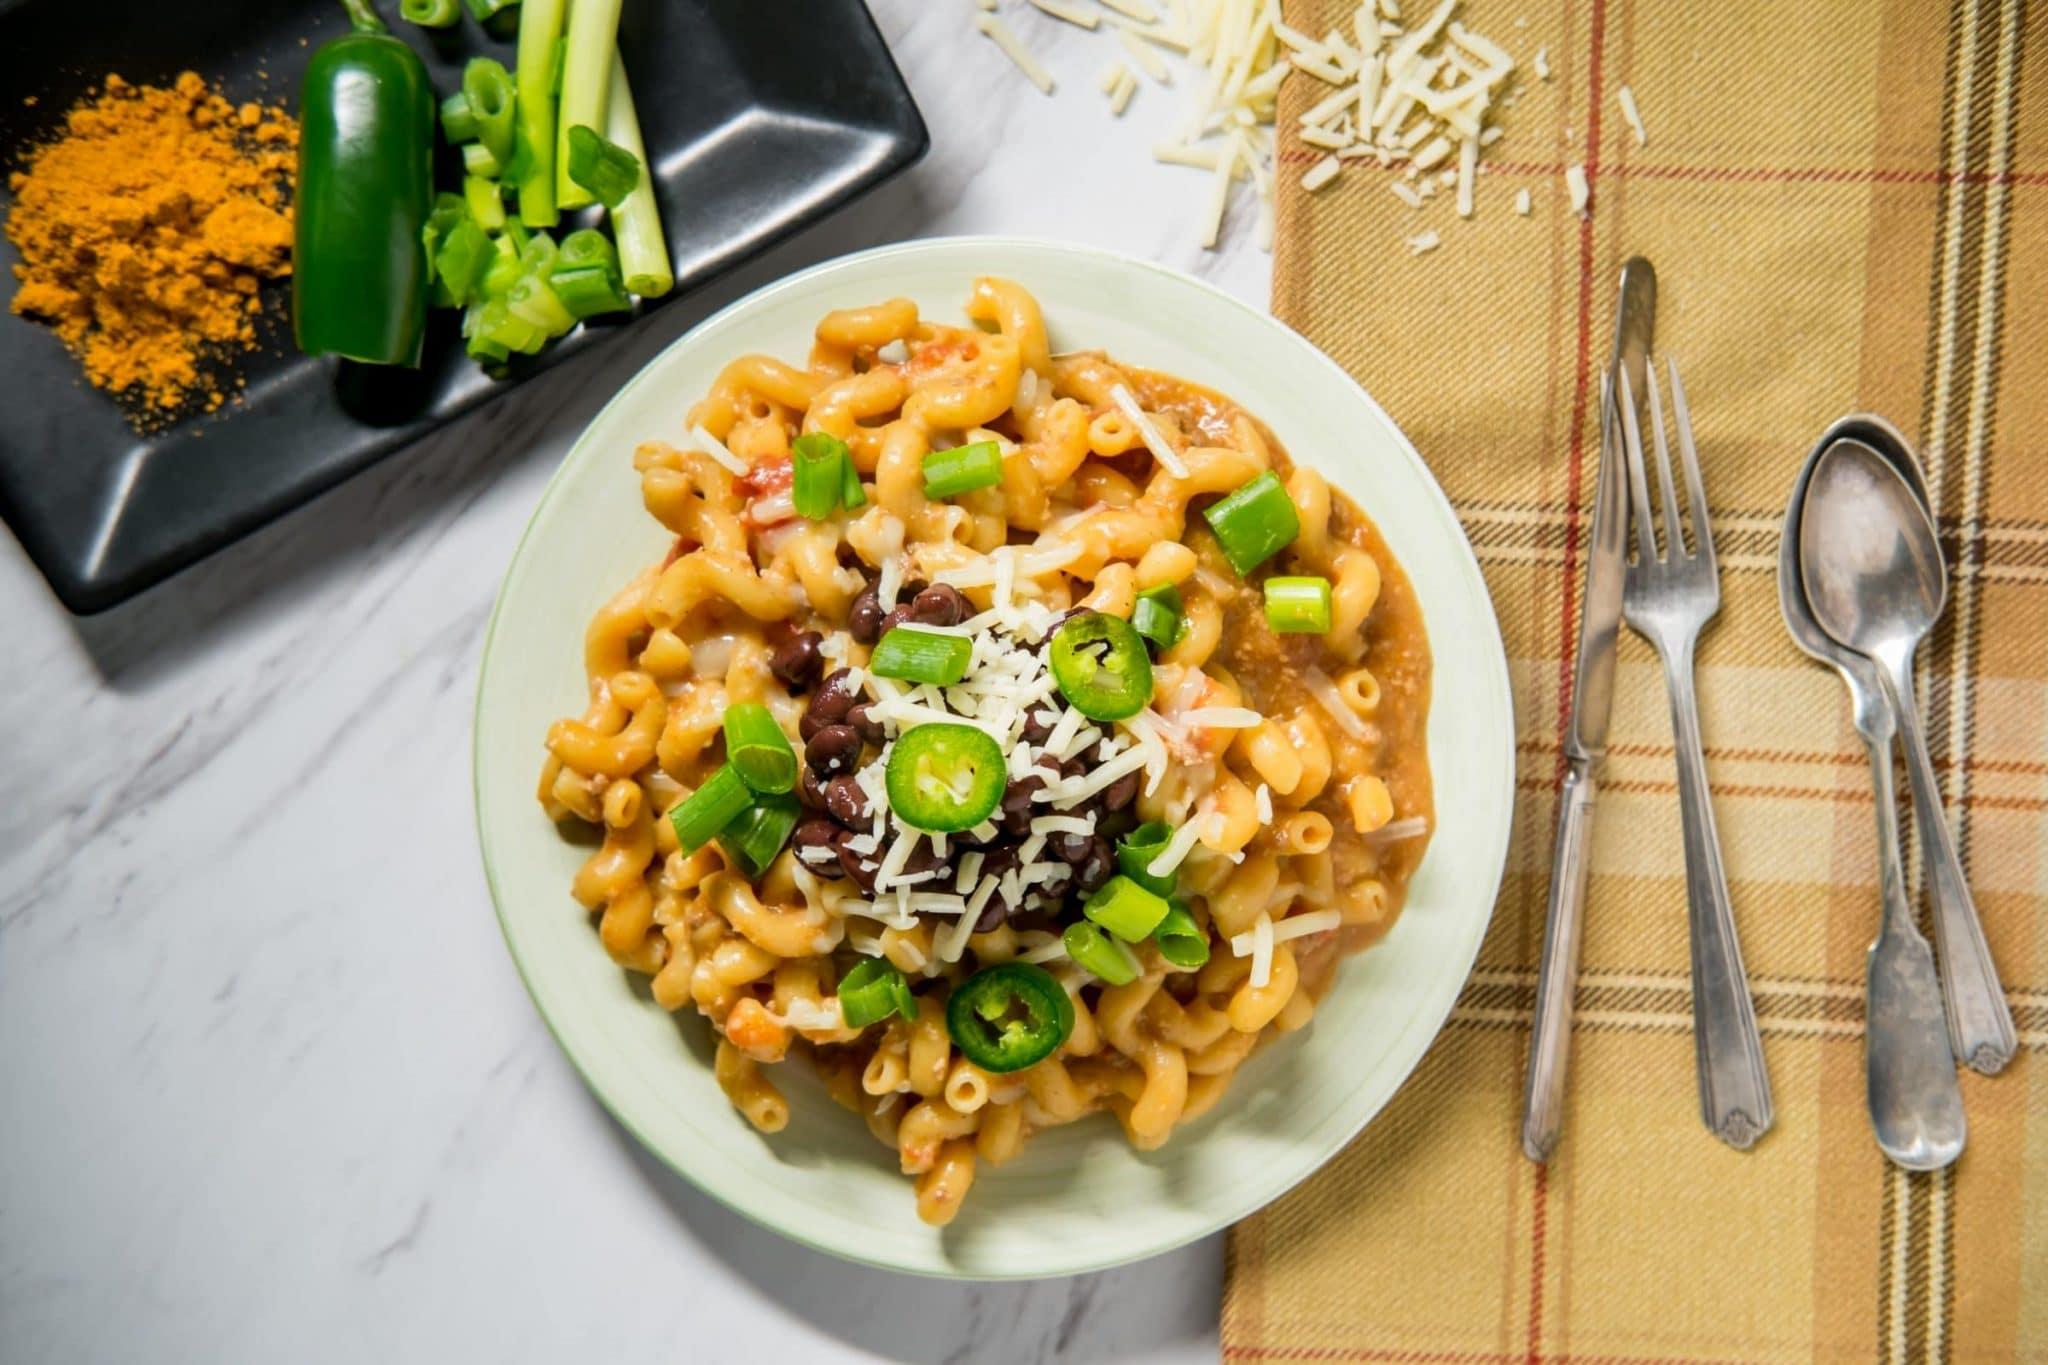 Shake up your next taco Tuesday with this Taco Pasta Recipe. Get the traditional flavor of tacos, but in an al dente pasta! #taco #pasta #tacotuesday #cheesy